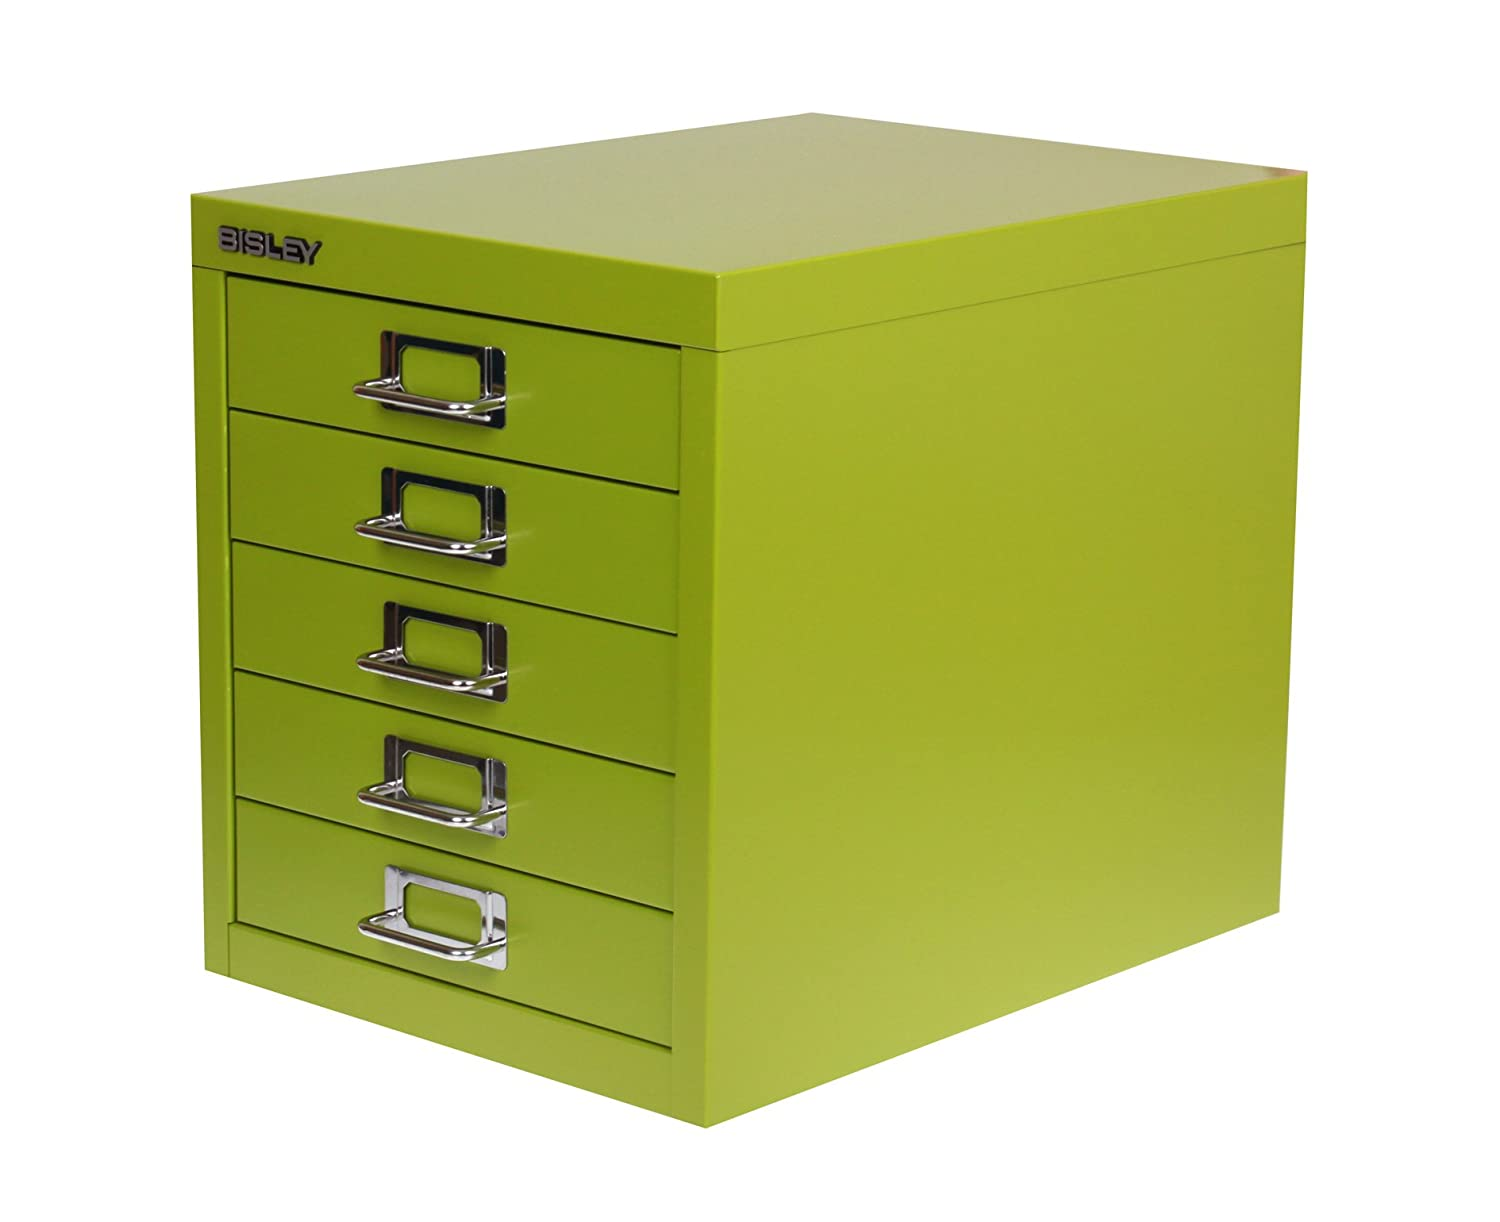 Bisley Desktop Cabinet 5 Drawer H330xW279xD381mm Steel - Color: Green